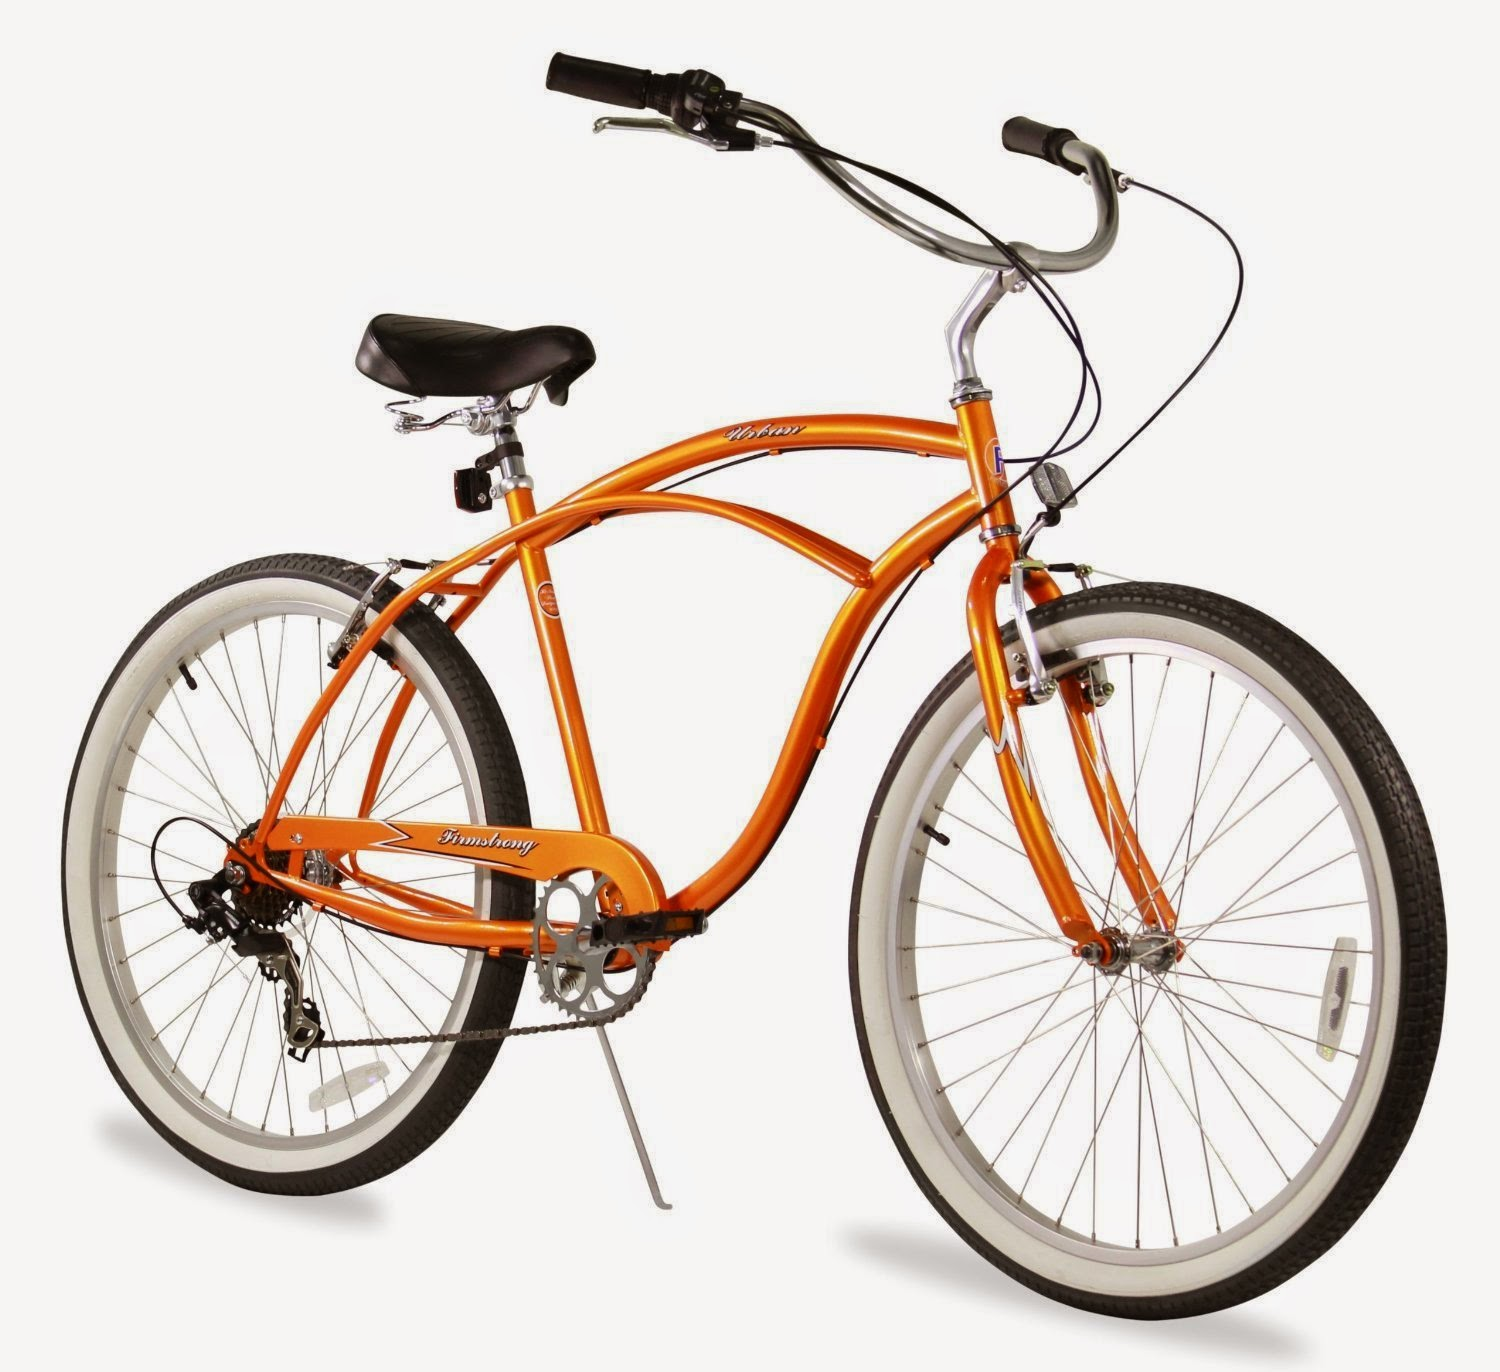 "Firmstrong Urban Man 7-Speed - Men's 26"" Beach Cruiser Bike, picture, image, review features & specifications, compare with single-speed and 3-speed versions"